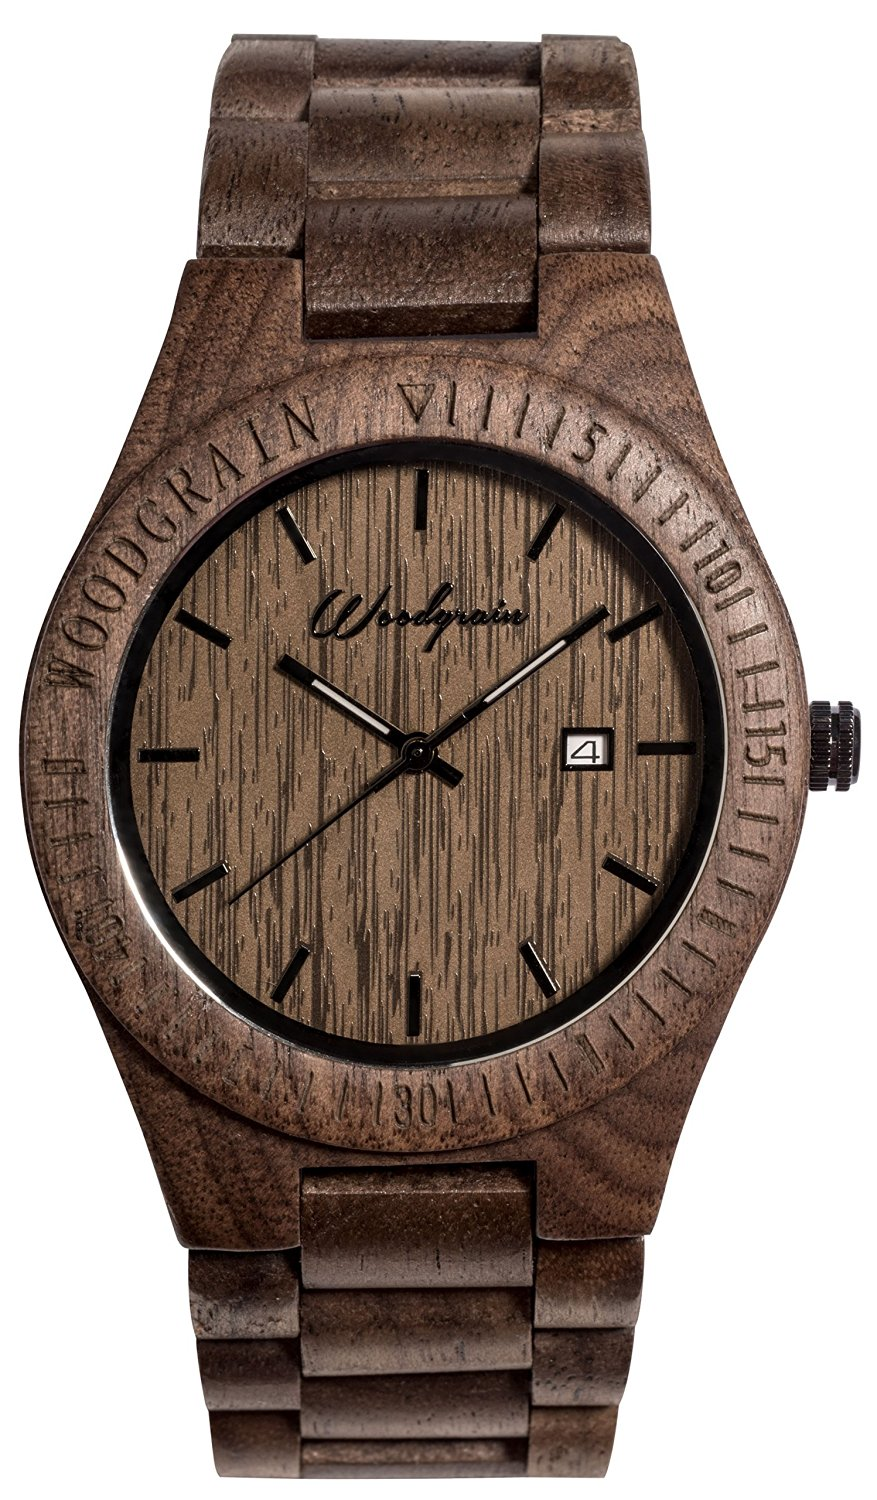 wood three of oregon launched united market jasem juju ryan item it states the mark beltran og alterra rakuten original giona global is en grain brand gise from originalgrain with which in andrew watches store